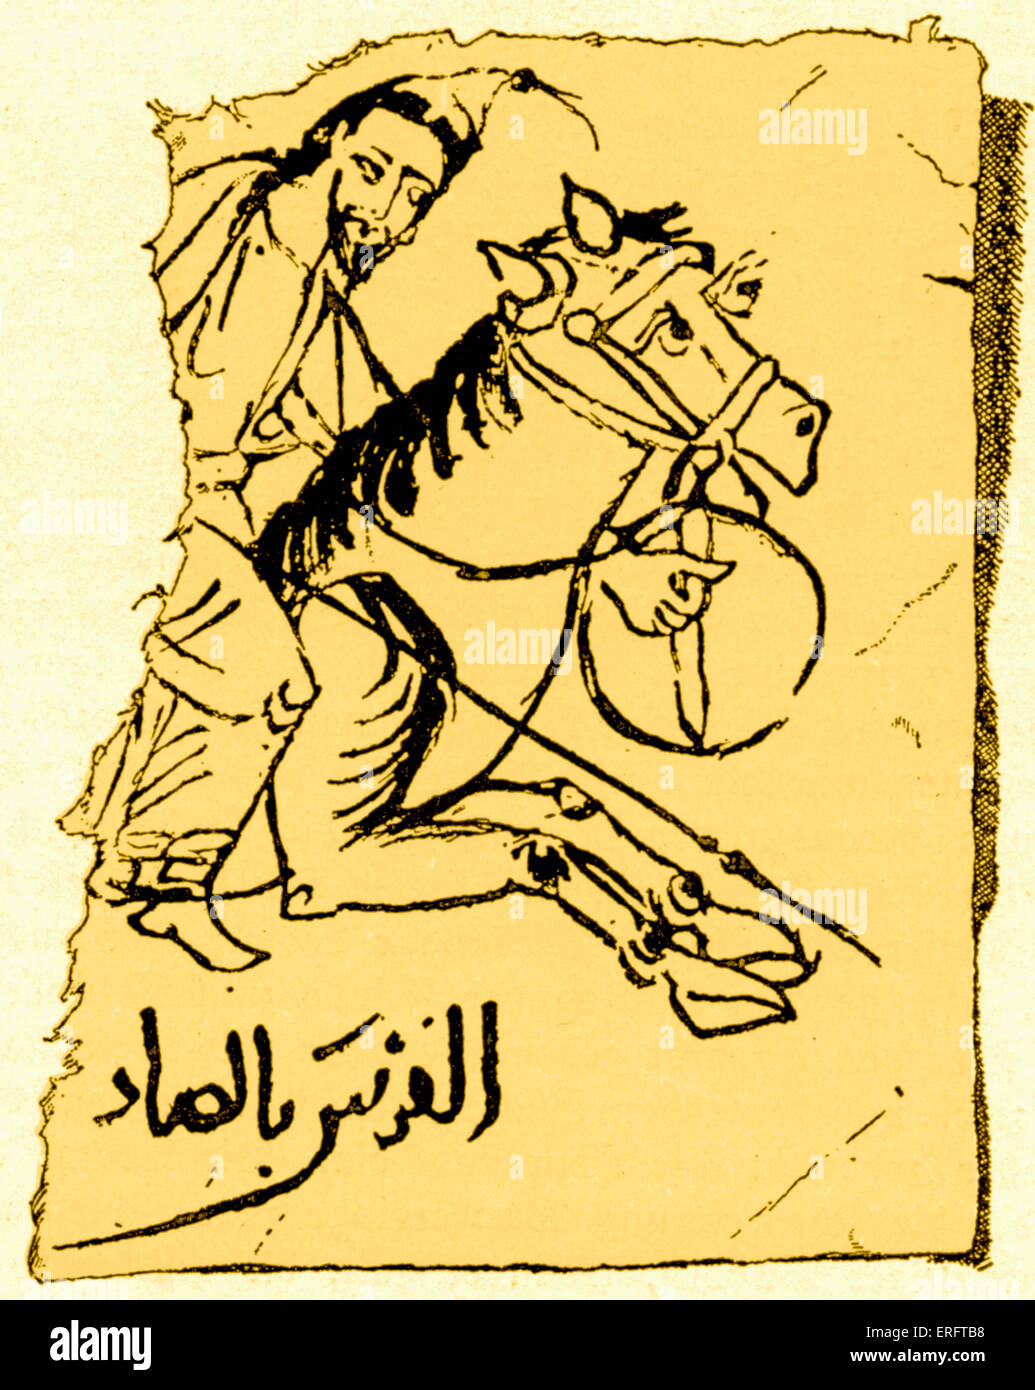 Arab horseman / rider - from an Arab papyrus from the 10th century. - Stock Image